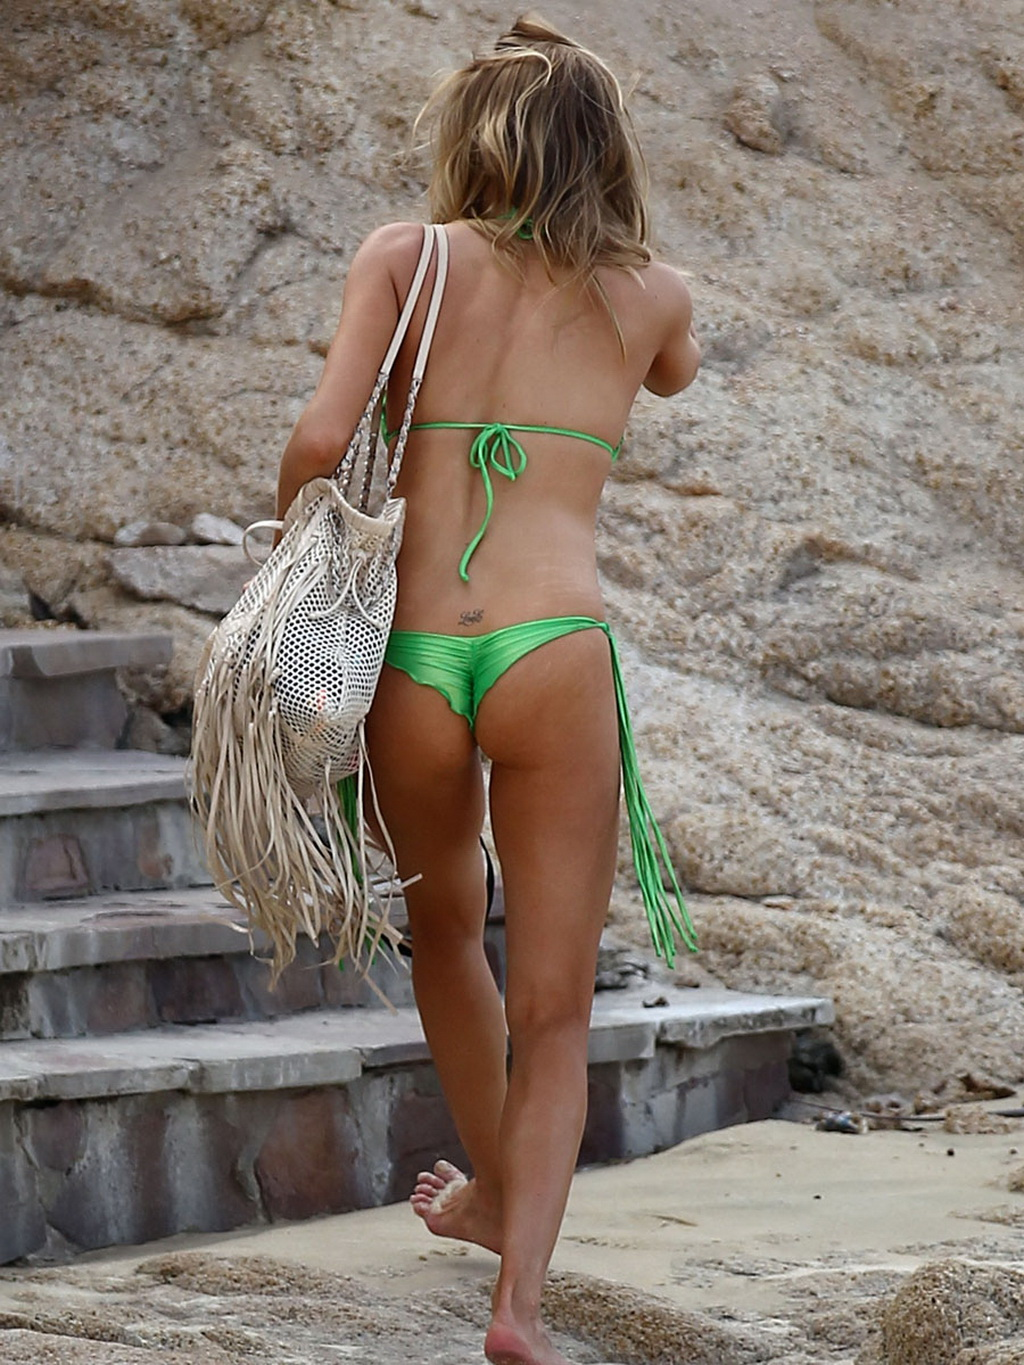 Leann Rimes Showing Her Nice Tits And Hot Ass Wearing A Wasabi Green